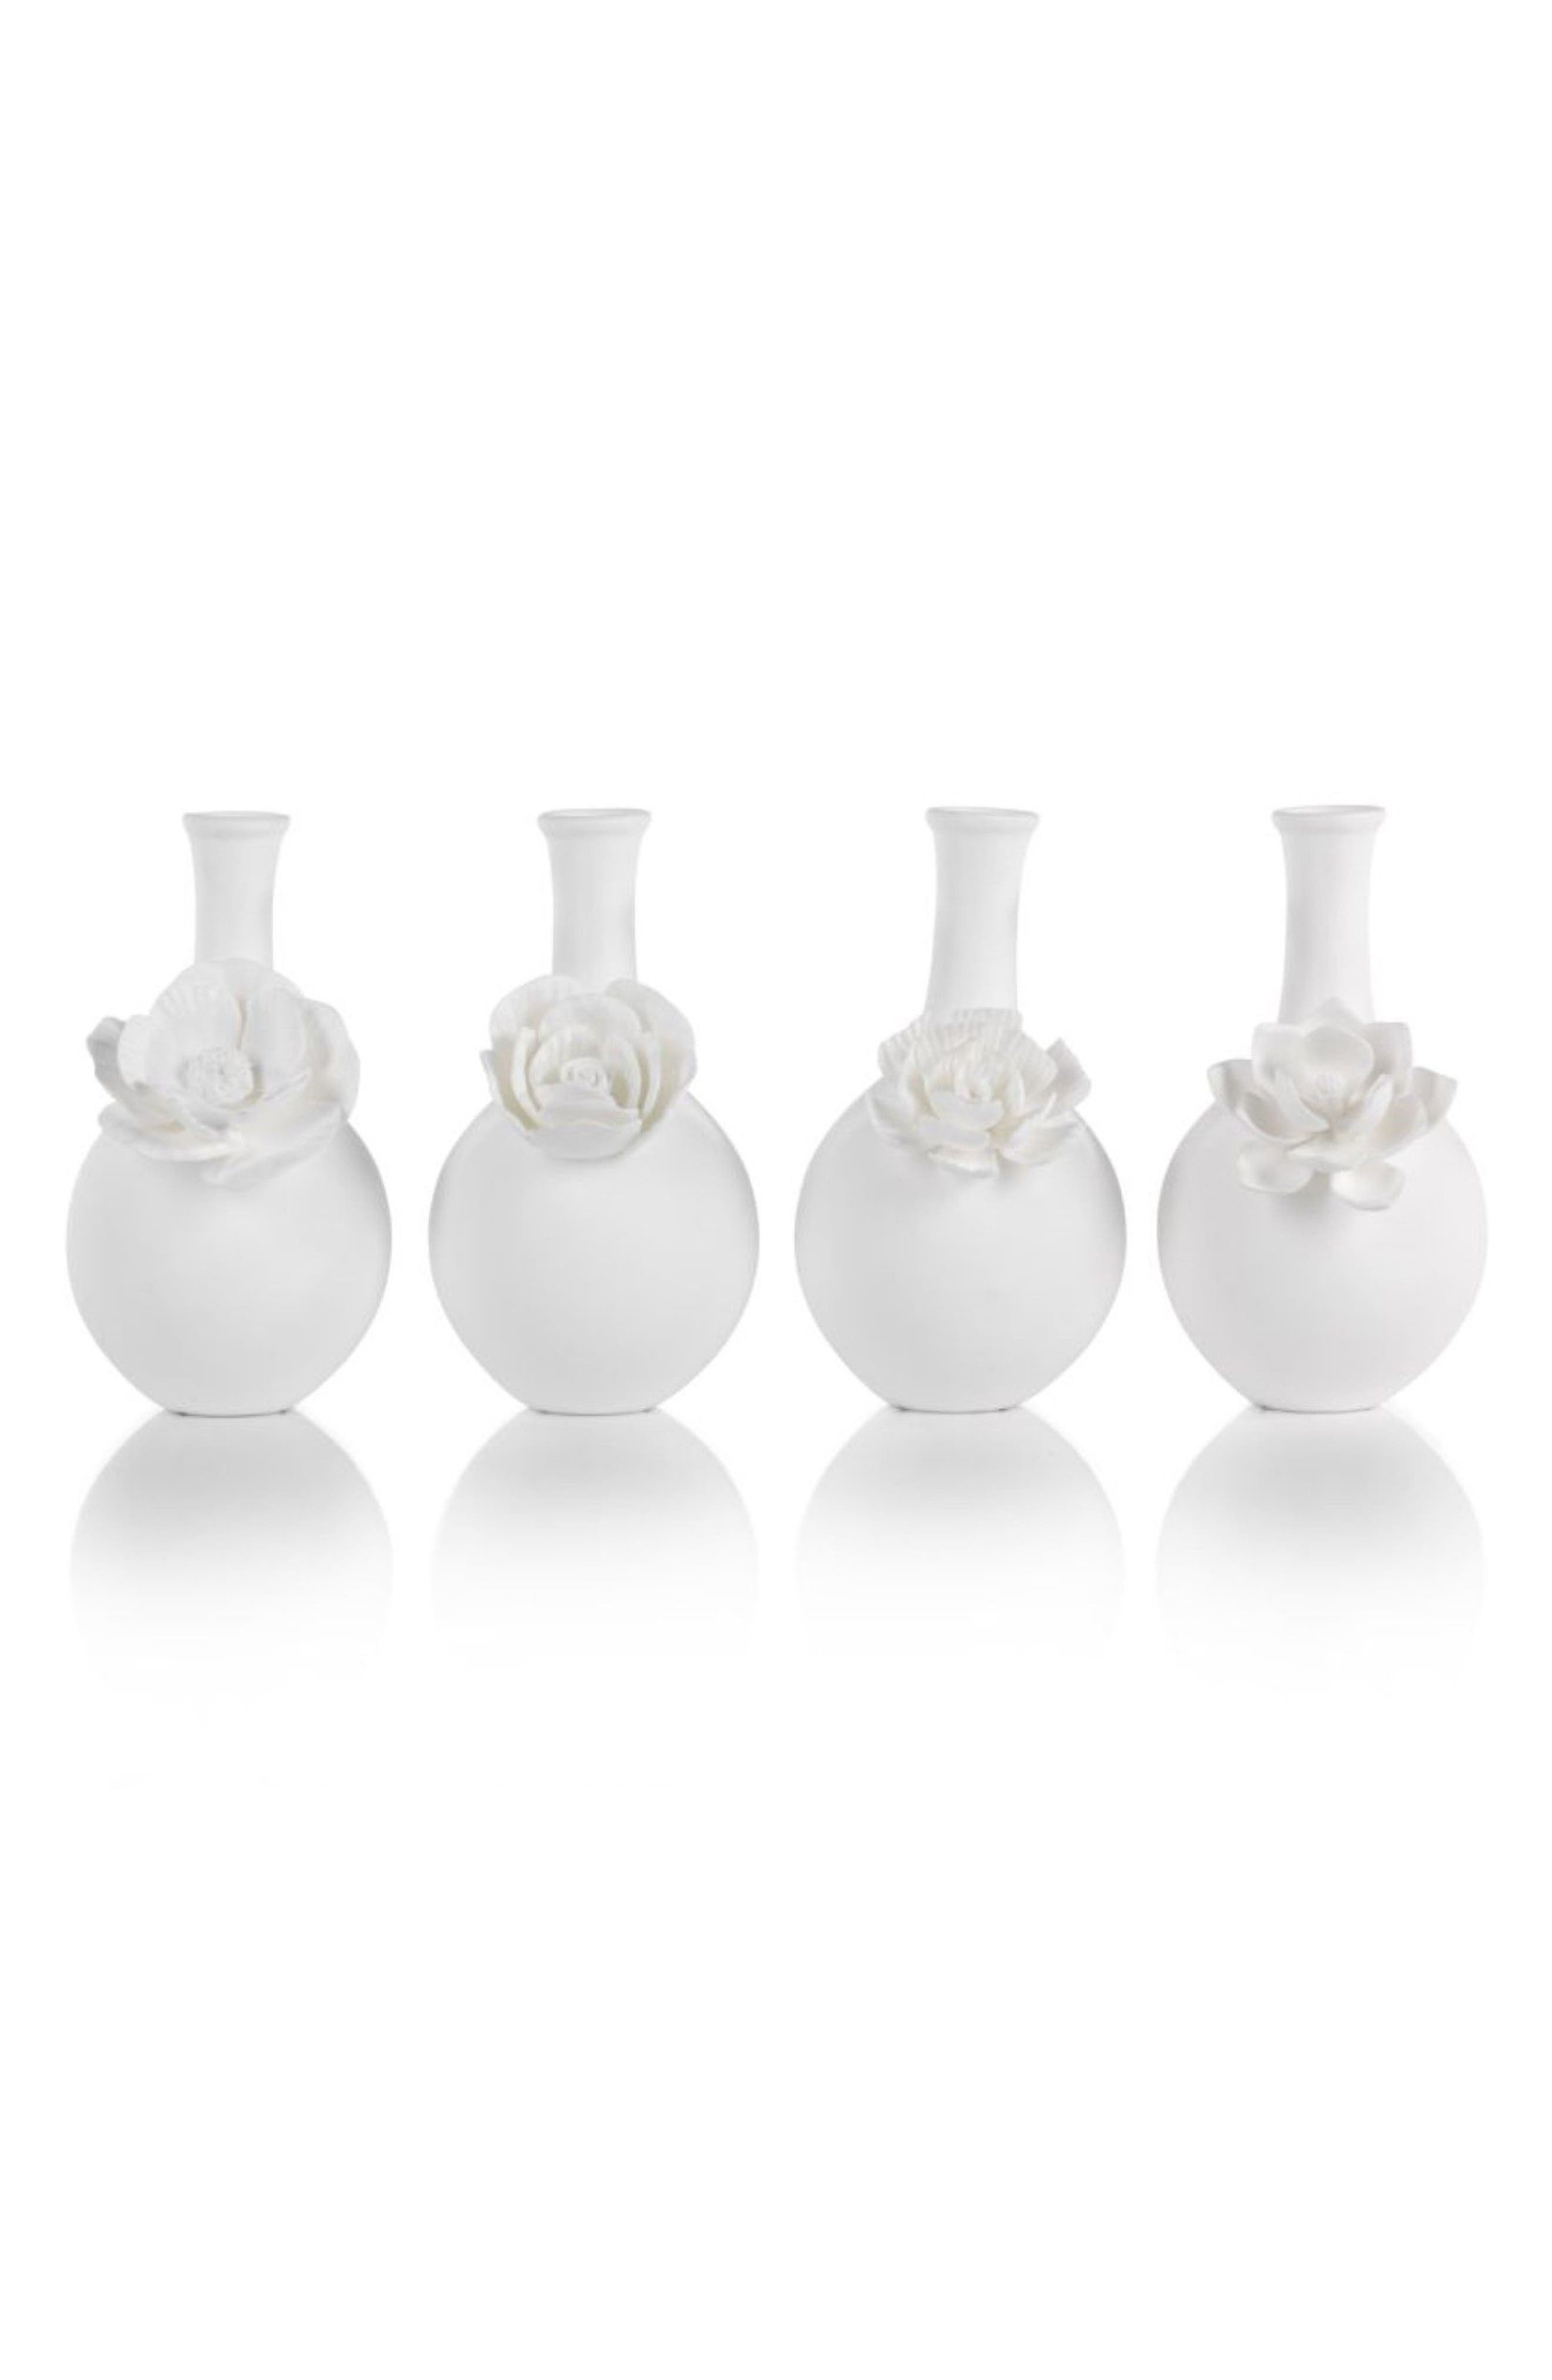 Cameo Set of 4 Porcelain Bud Vases,                             Main thumbnail 1, color,                             WHITE